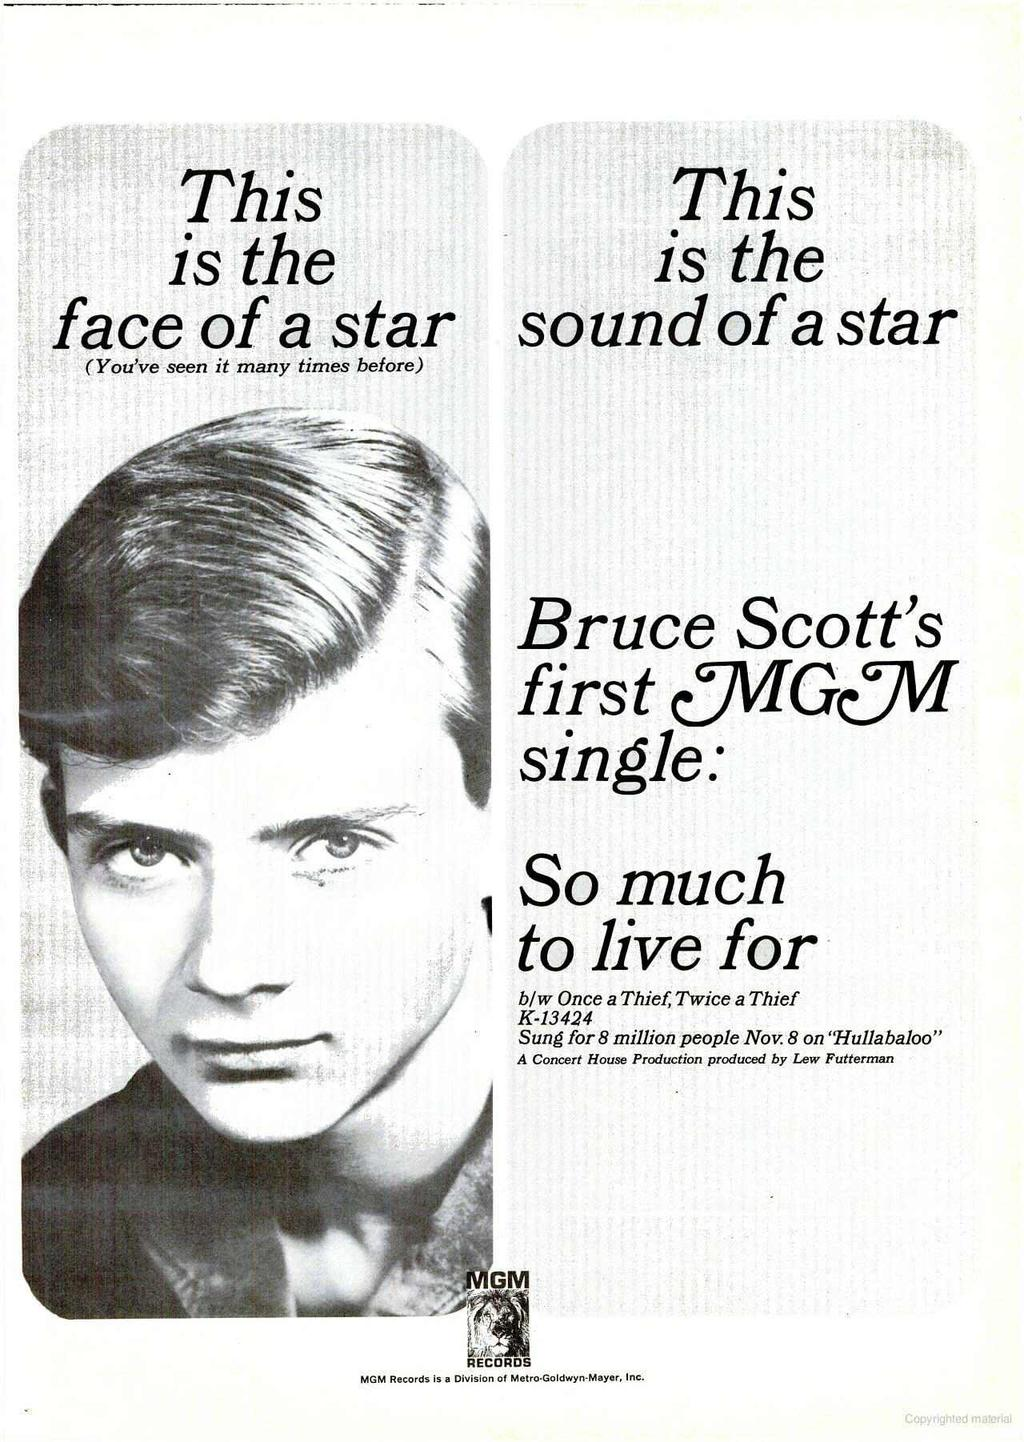 This is the This is the face of a star sound of a star (You've seen it many times before) Bruce Scott's first WIGCYVI single: So much to live for b/w Once a Thief, Twice a Thief K